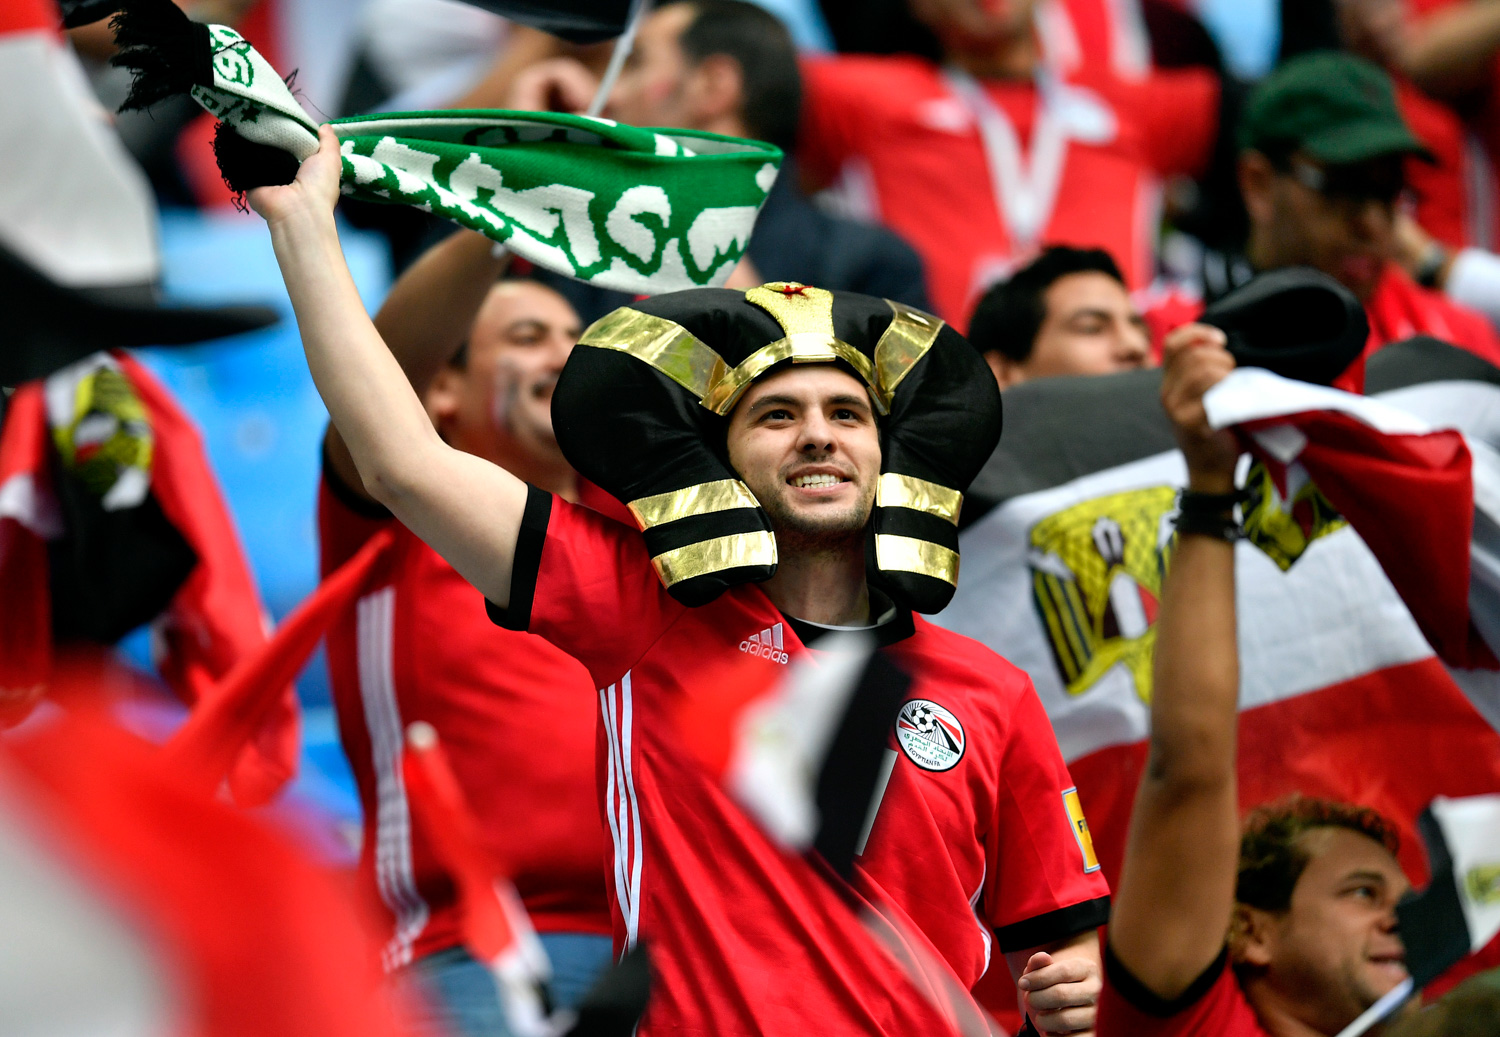 "<div class=""meta image-caption""><div class=""origin-logo origin-image none""><span>none</span></div><span class=""caption-text"">Supporters cheer prior the group A match between Russia and Egypt at the 2018 soccer World Cup in the St. Petersburg stadium (Martin Meissner/AP)</span></div>"